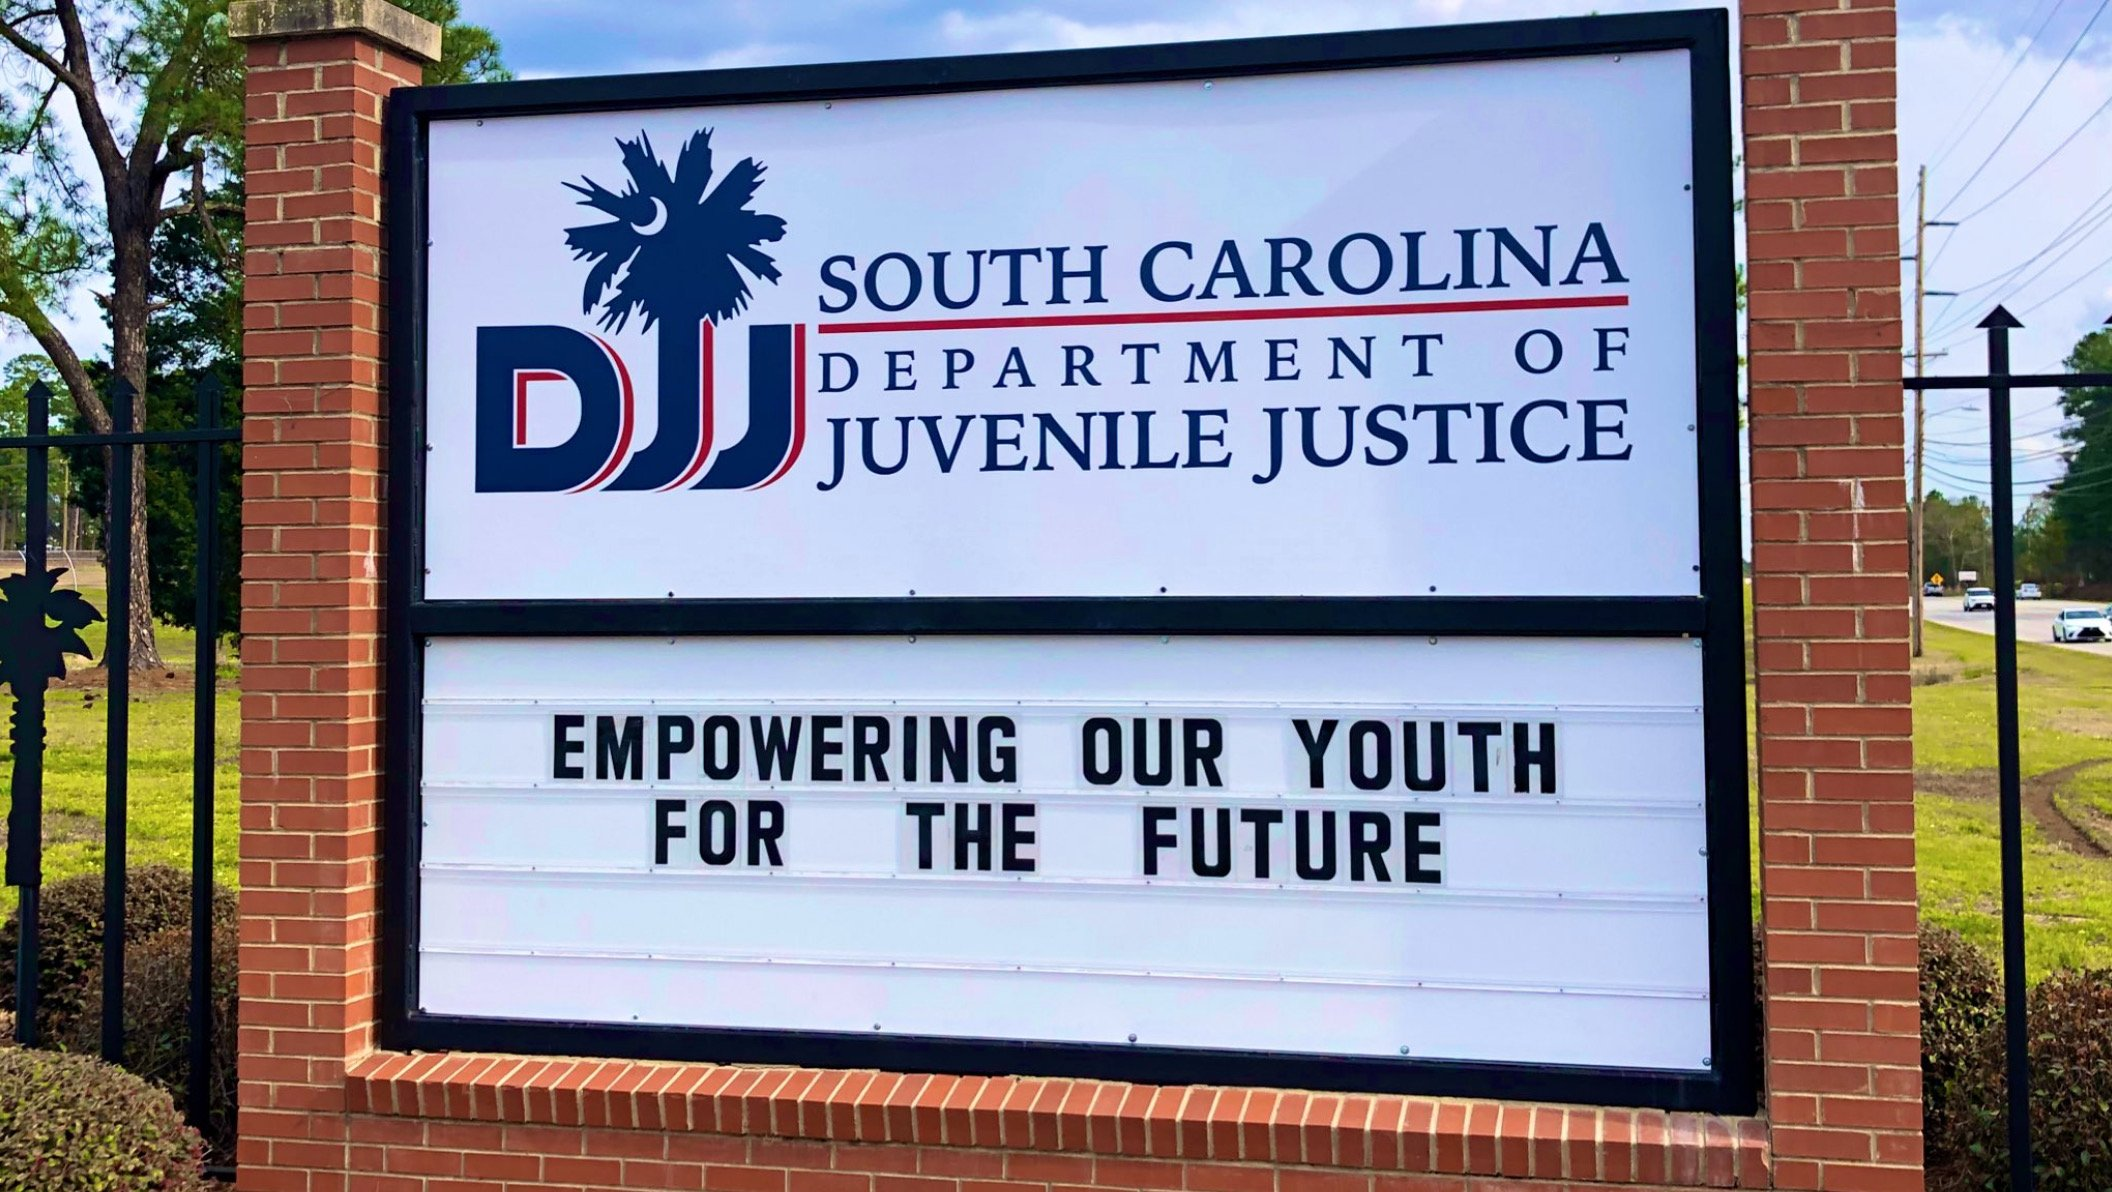 FITSNews – Guards, Teachers Stage Protest Walkout At Embattled South Carolina Juvenile Justice Agency